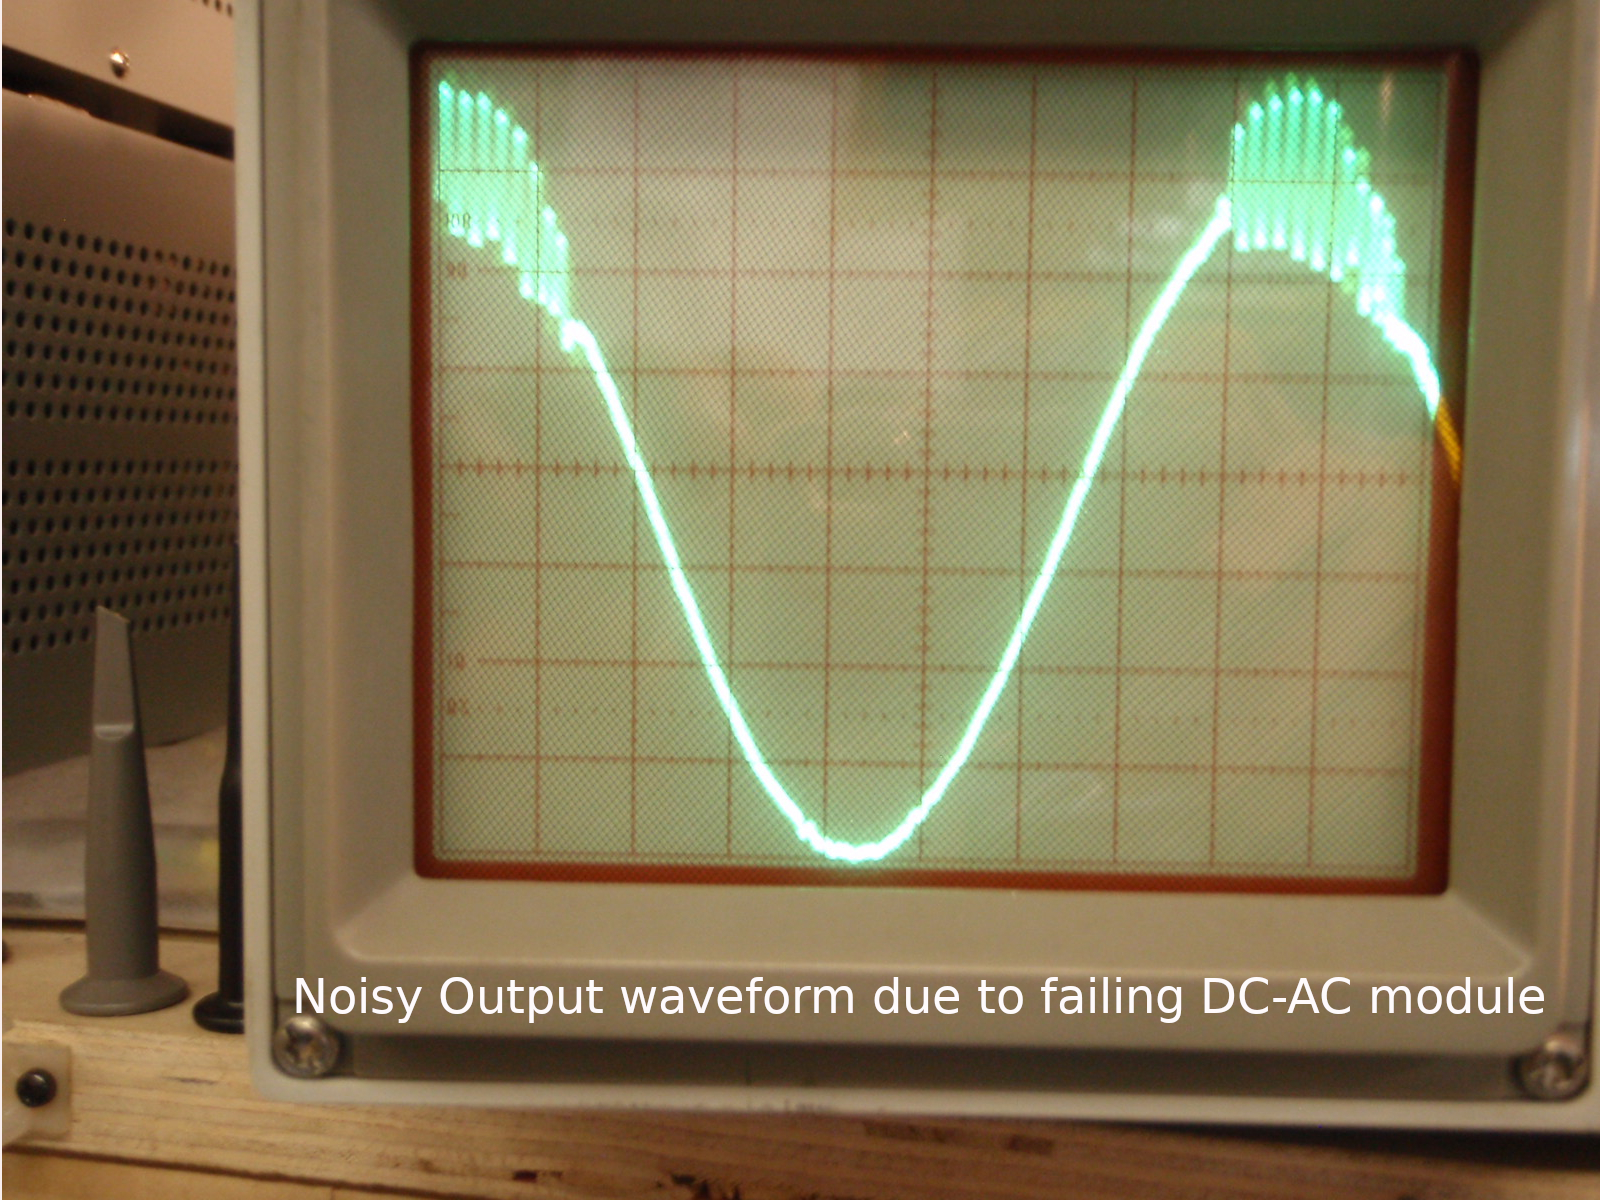 Noisy output waveform due to failing DC-AC module.